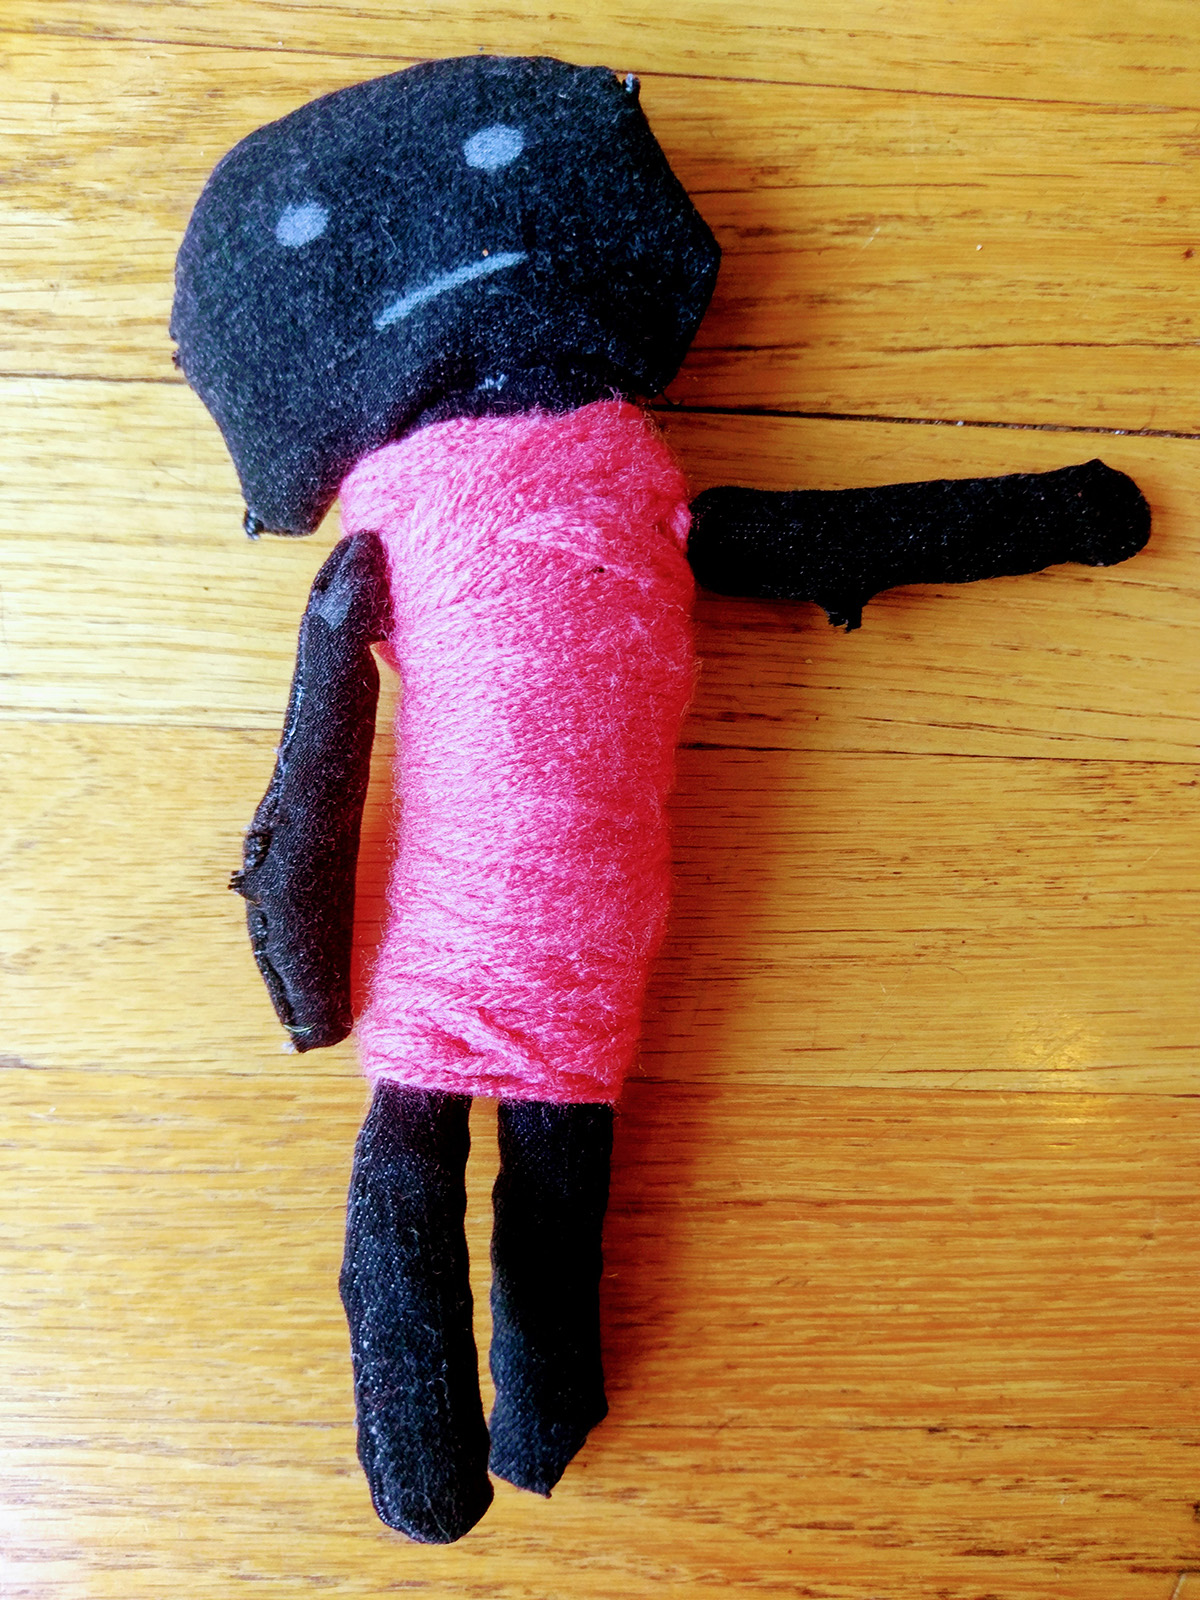 Hand-made doll with black body and pink clothing